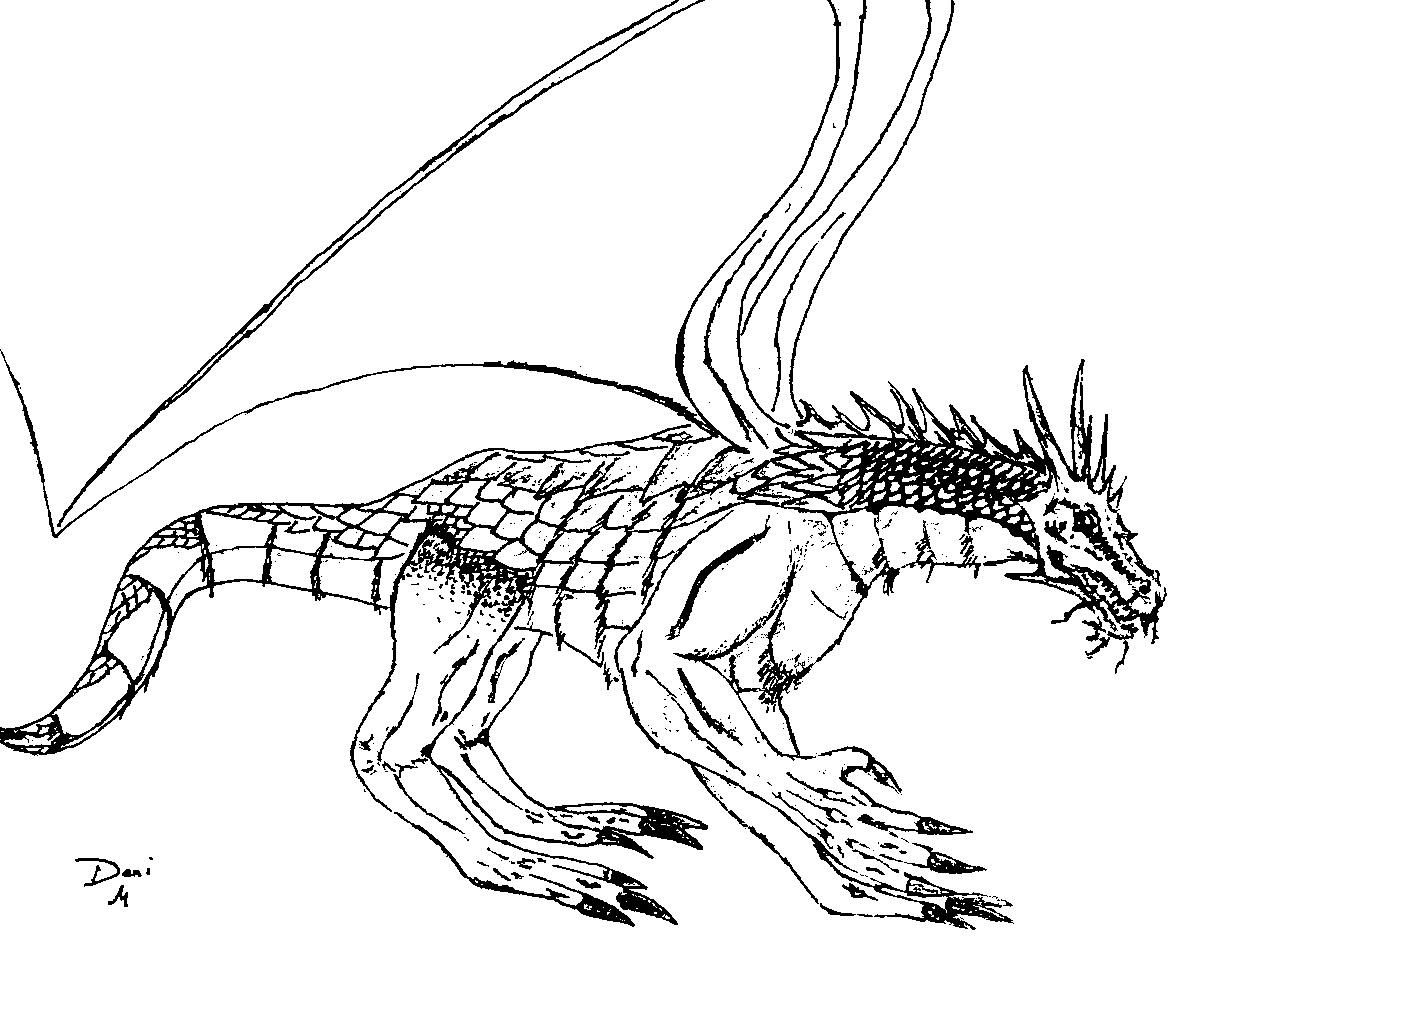 Coloring Page World: Scaly Dragon (Landscape)